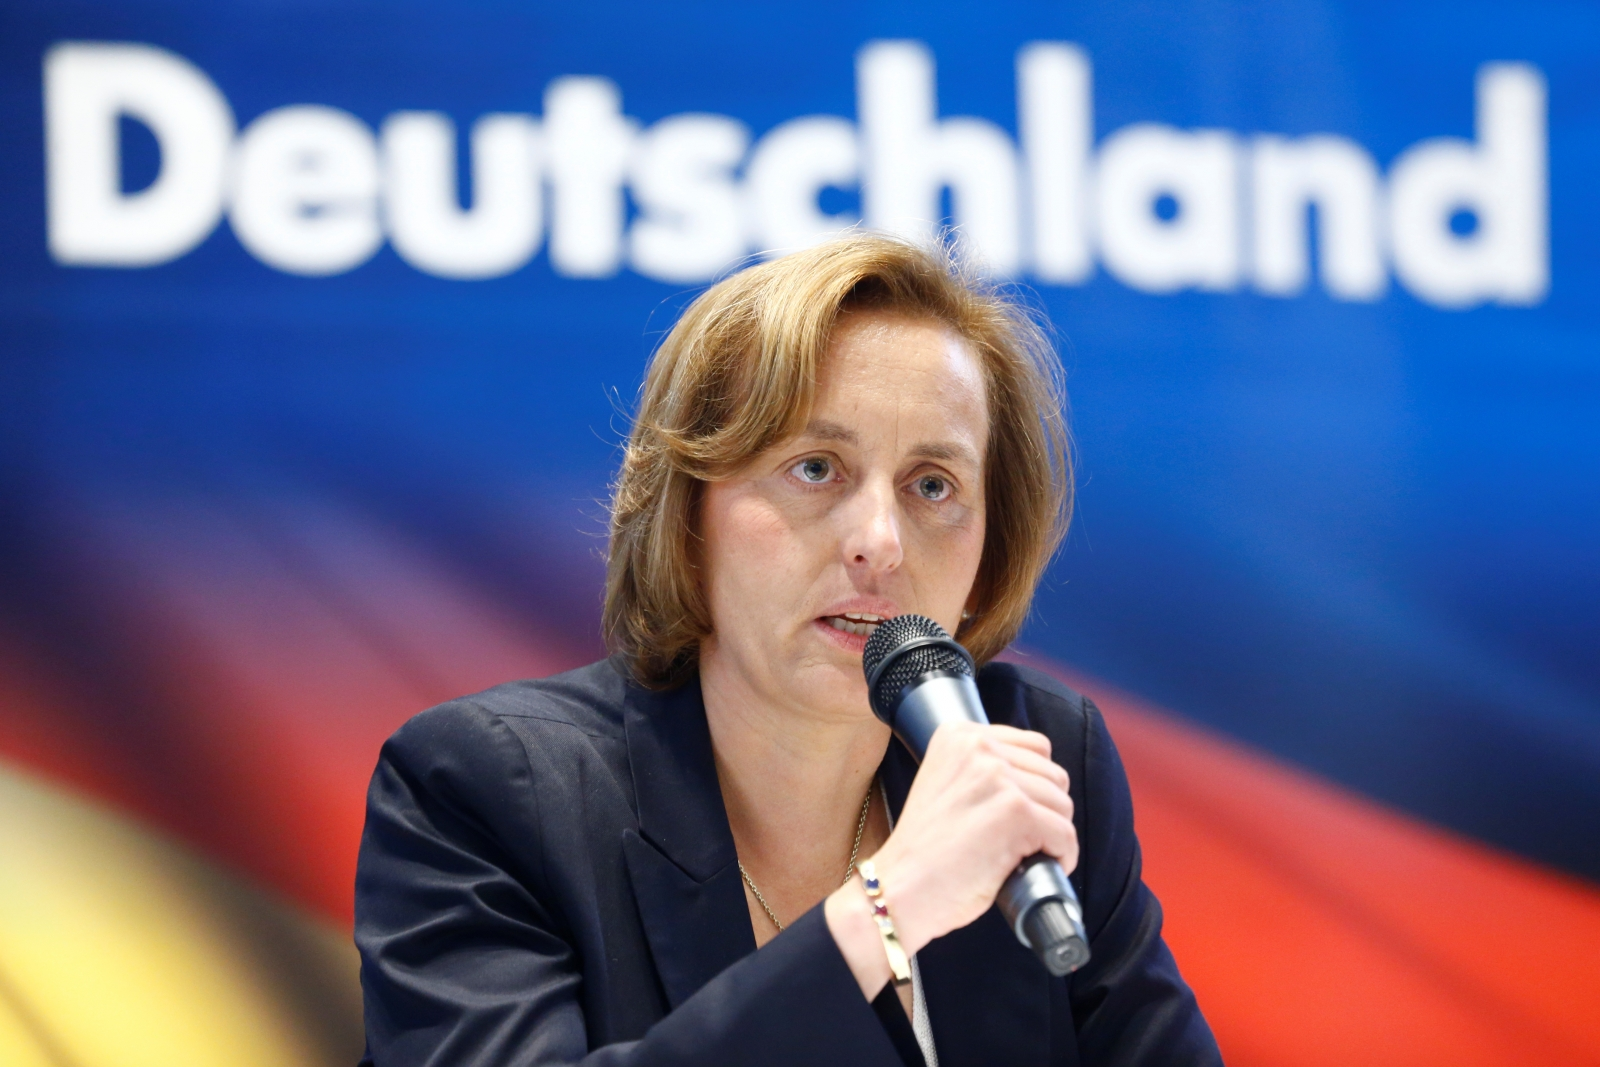 German nationalist lawmaker's anti-Muslim tweet prompts complaint